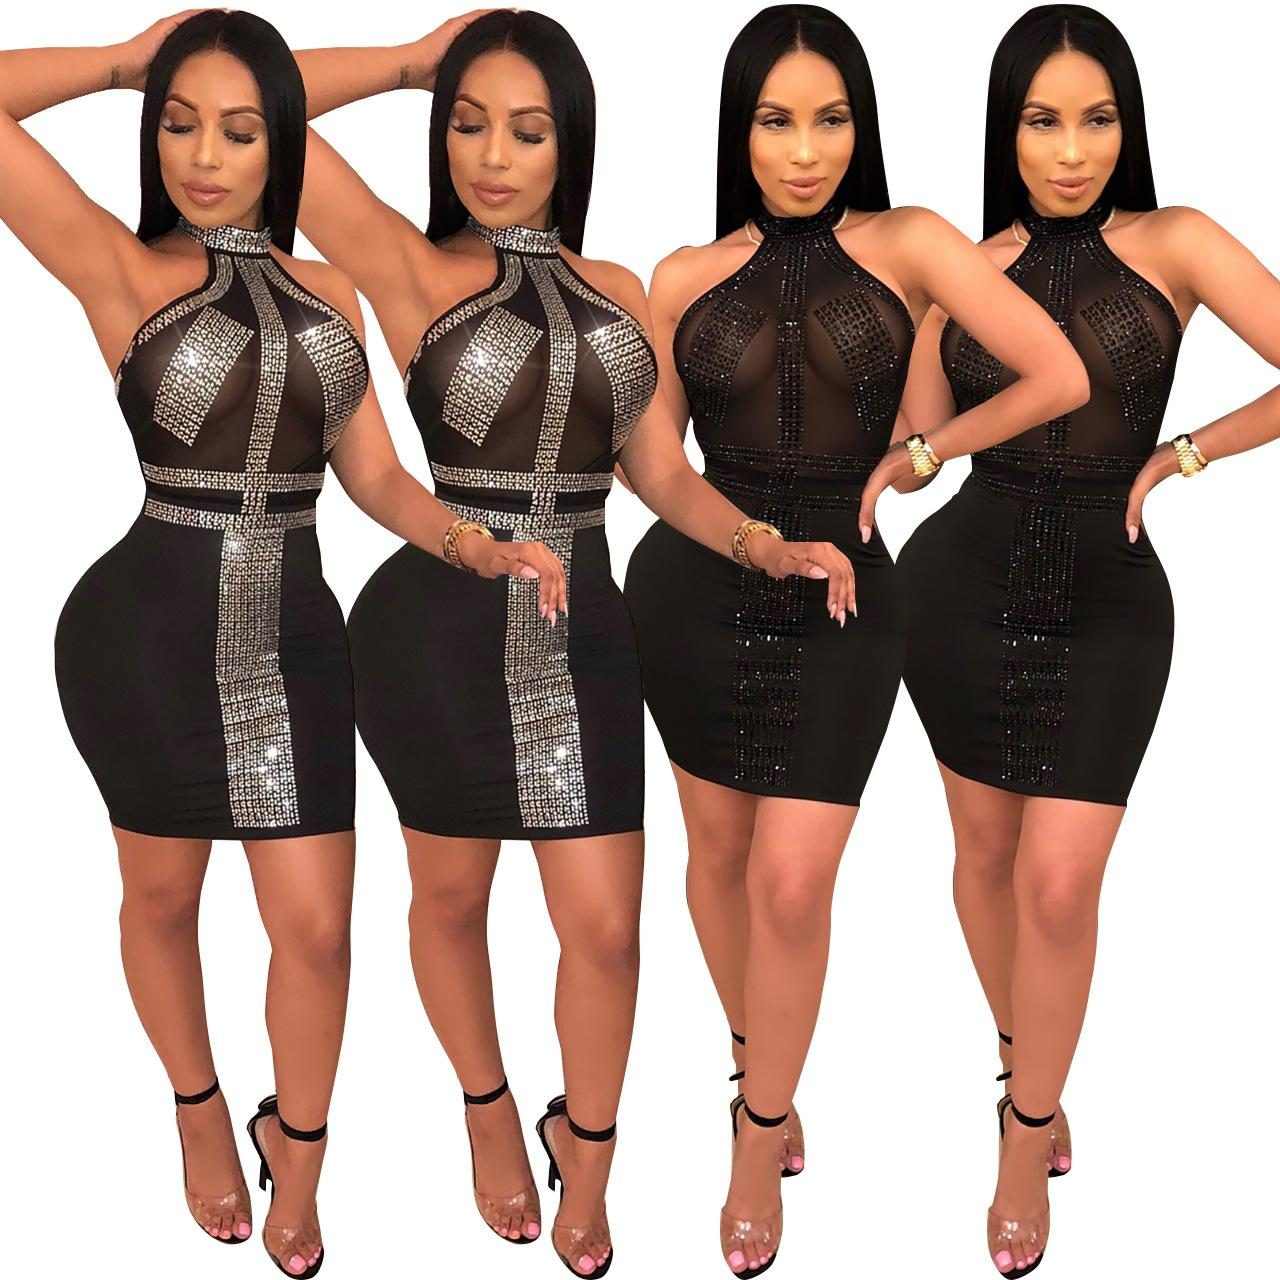 e08bbd7ce191 2019 2018 NEW Mesh Bodycon Dress Sexy Club Dress 2018 Backless Mini Party  Dresses F0208 Two Colors With Rhinestones From Sarmit, $26.01 | DHgate.Com